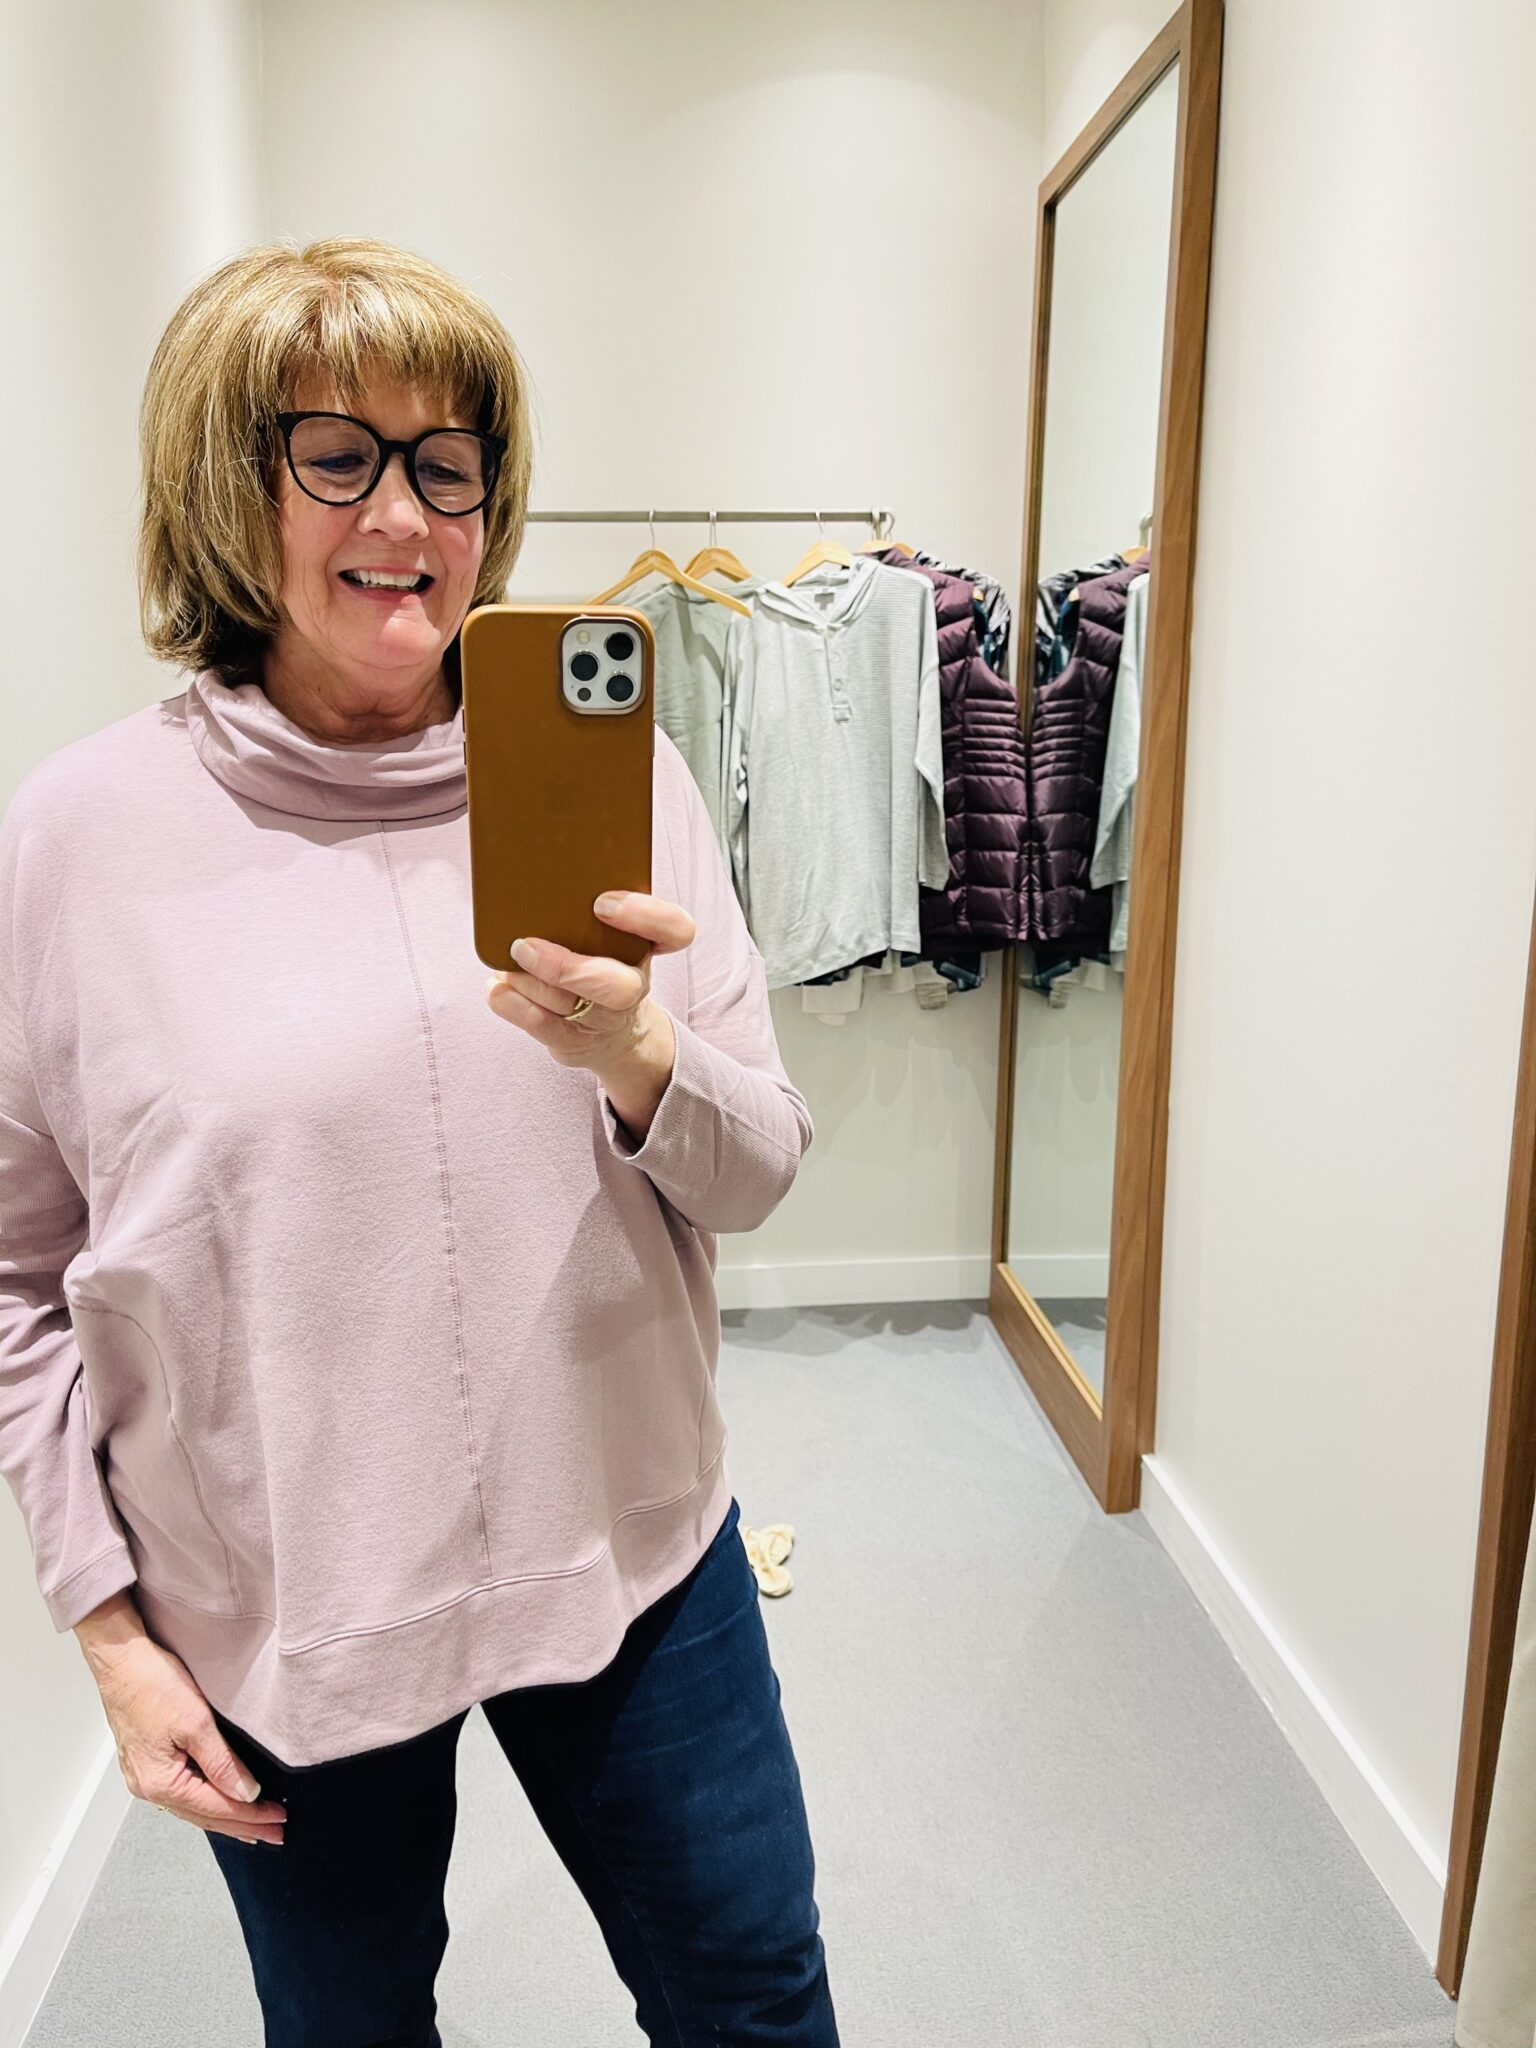 Pamela Lutrell shops JJill for nicer casual style in wardrobe transition to retirement